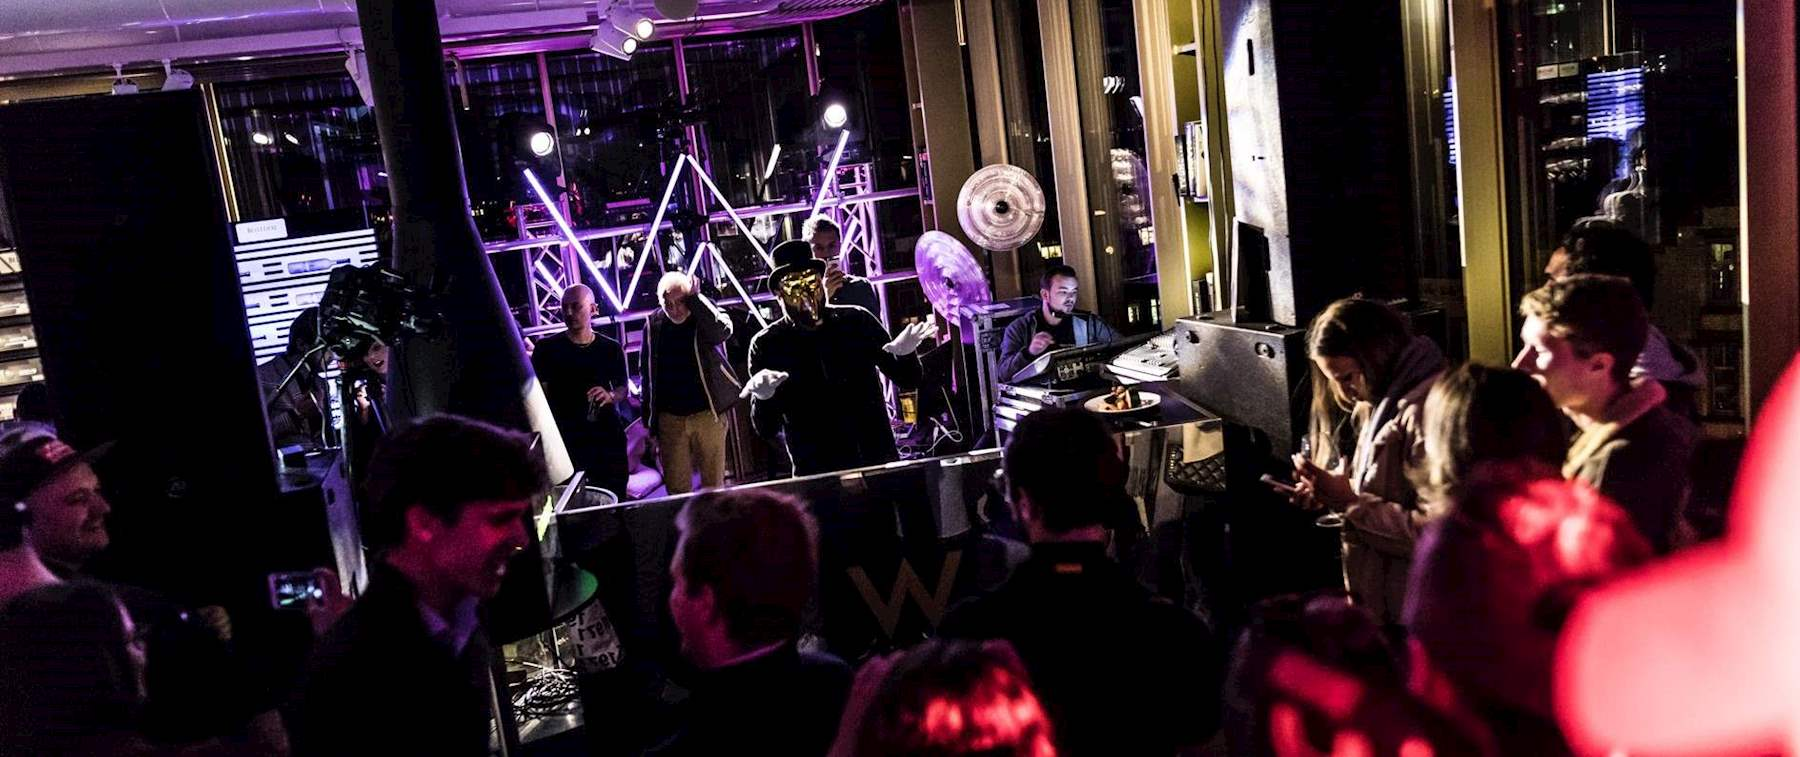 Own the moment at W Lounge